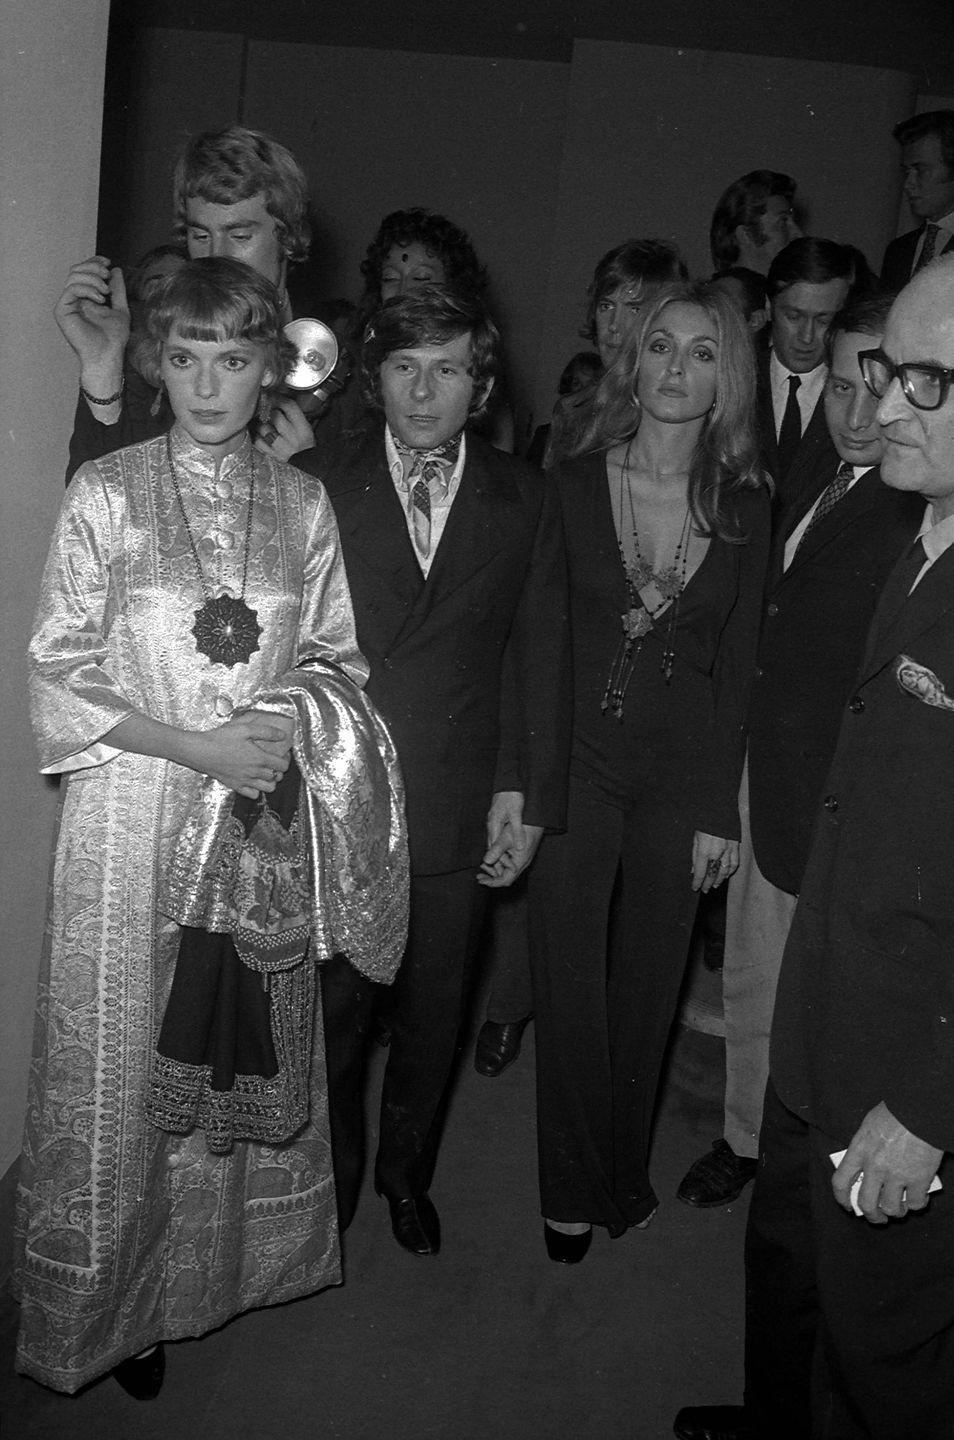 <p>Farrow poses with director Roman Polanski and his wife, actress Sharon Tate, at the premiere of <em>Rosemary's Baby</em> at the Cannes Film Festival. Polanski had originally envisioned Tate in the role of Rosemary Woodhouse<em>, </em>but Paramount decided to cast Farrow instead. </p>